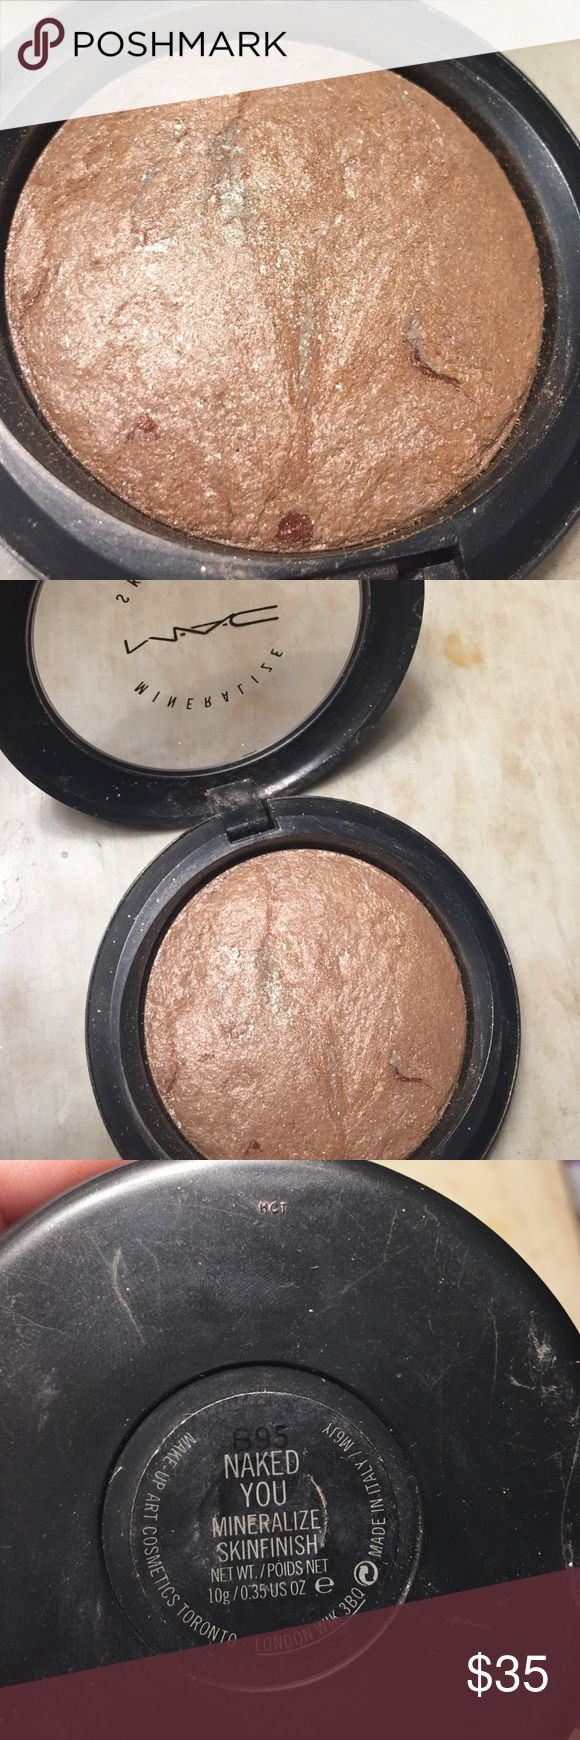 MAC Rare Mineralize Skinfinish in Naked You MAC Mineralize Skinfinish in Naked You. Product used a handful of times. Sanitized. Good condition. Gently used. Beautiful highlighter and bronzer. Rare item. MAC Cosmetics Makeup Bronzer